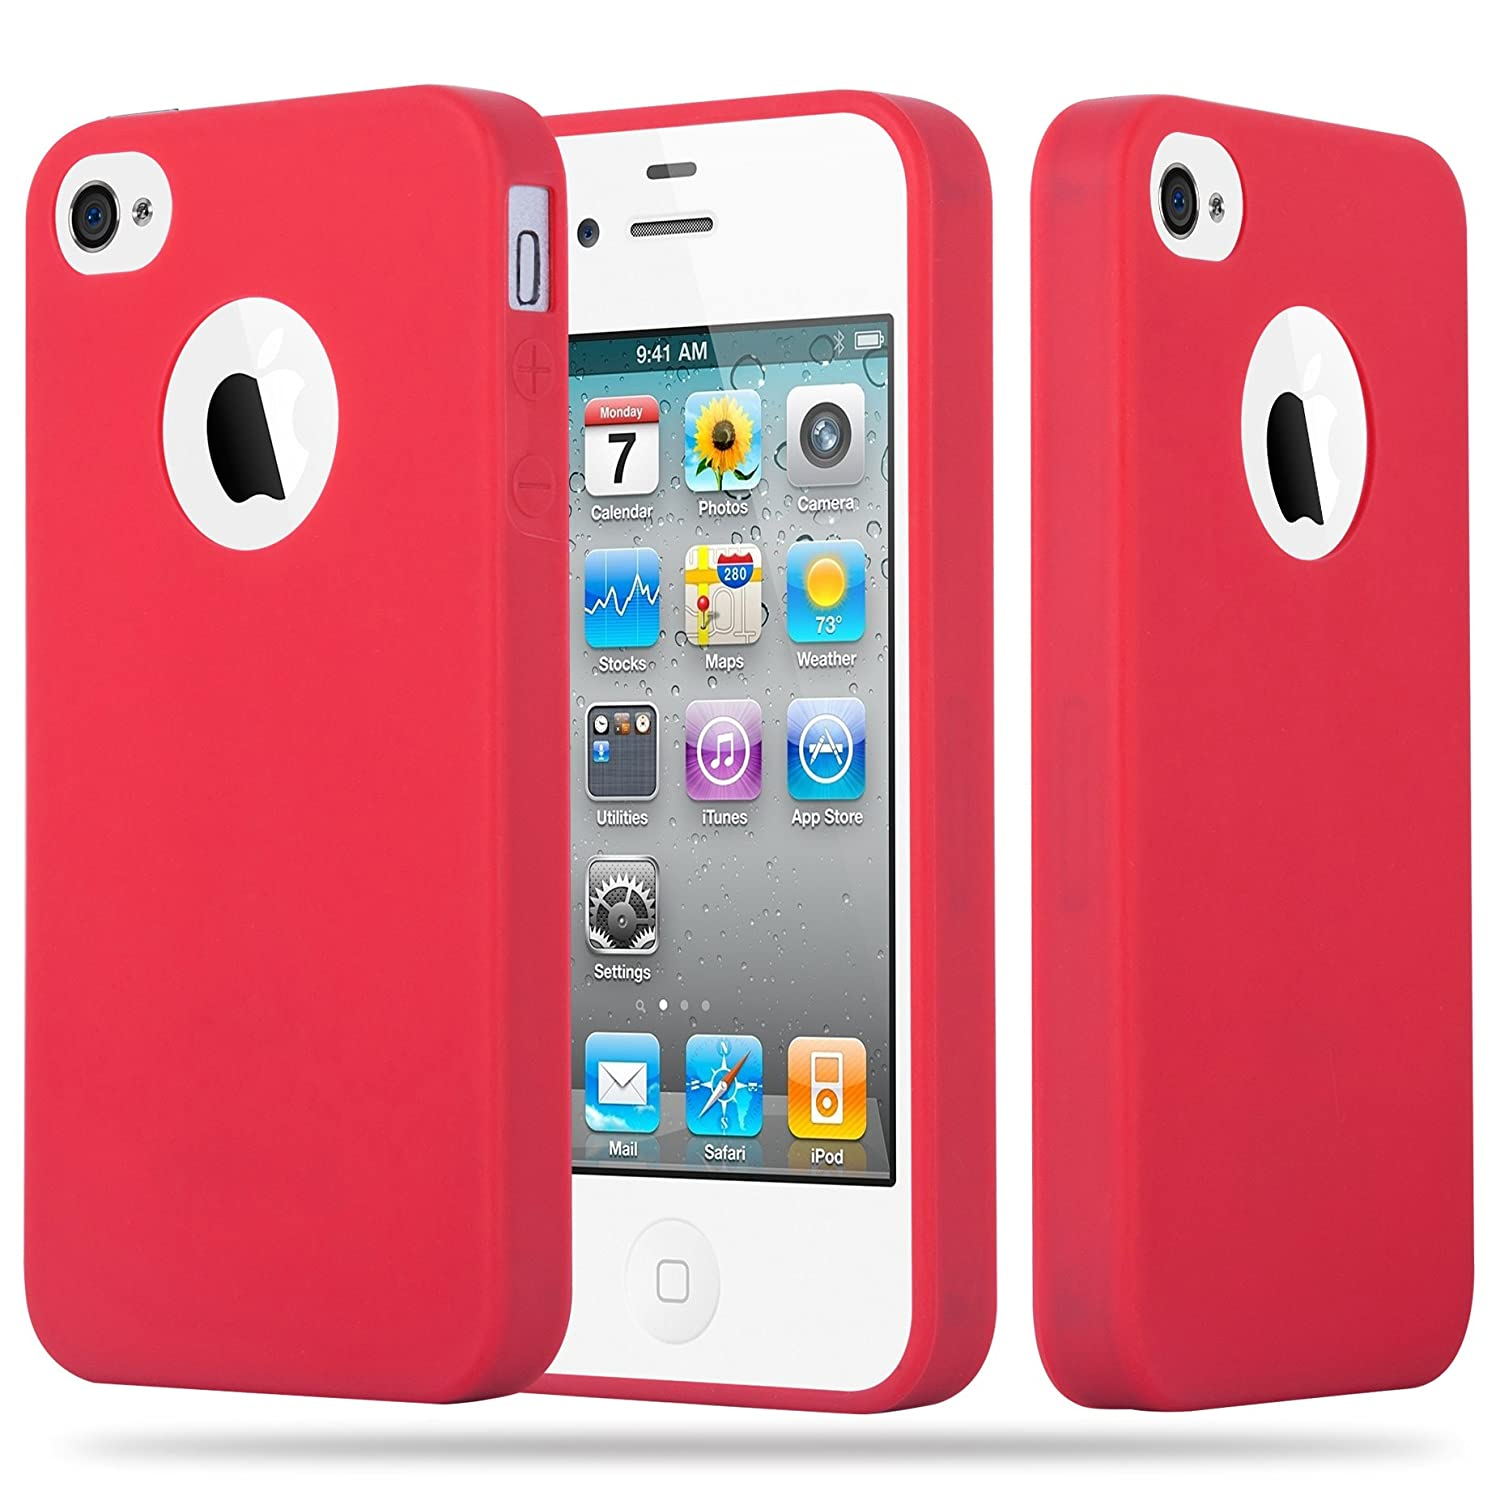 Cadorabo Funda para Apple iPhone 4 / iPhone 4S en Candy Rojo: Amazon.es: Electrónica